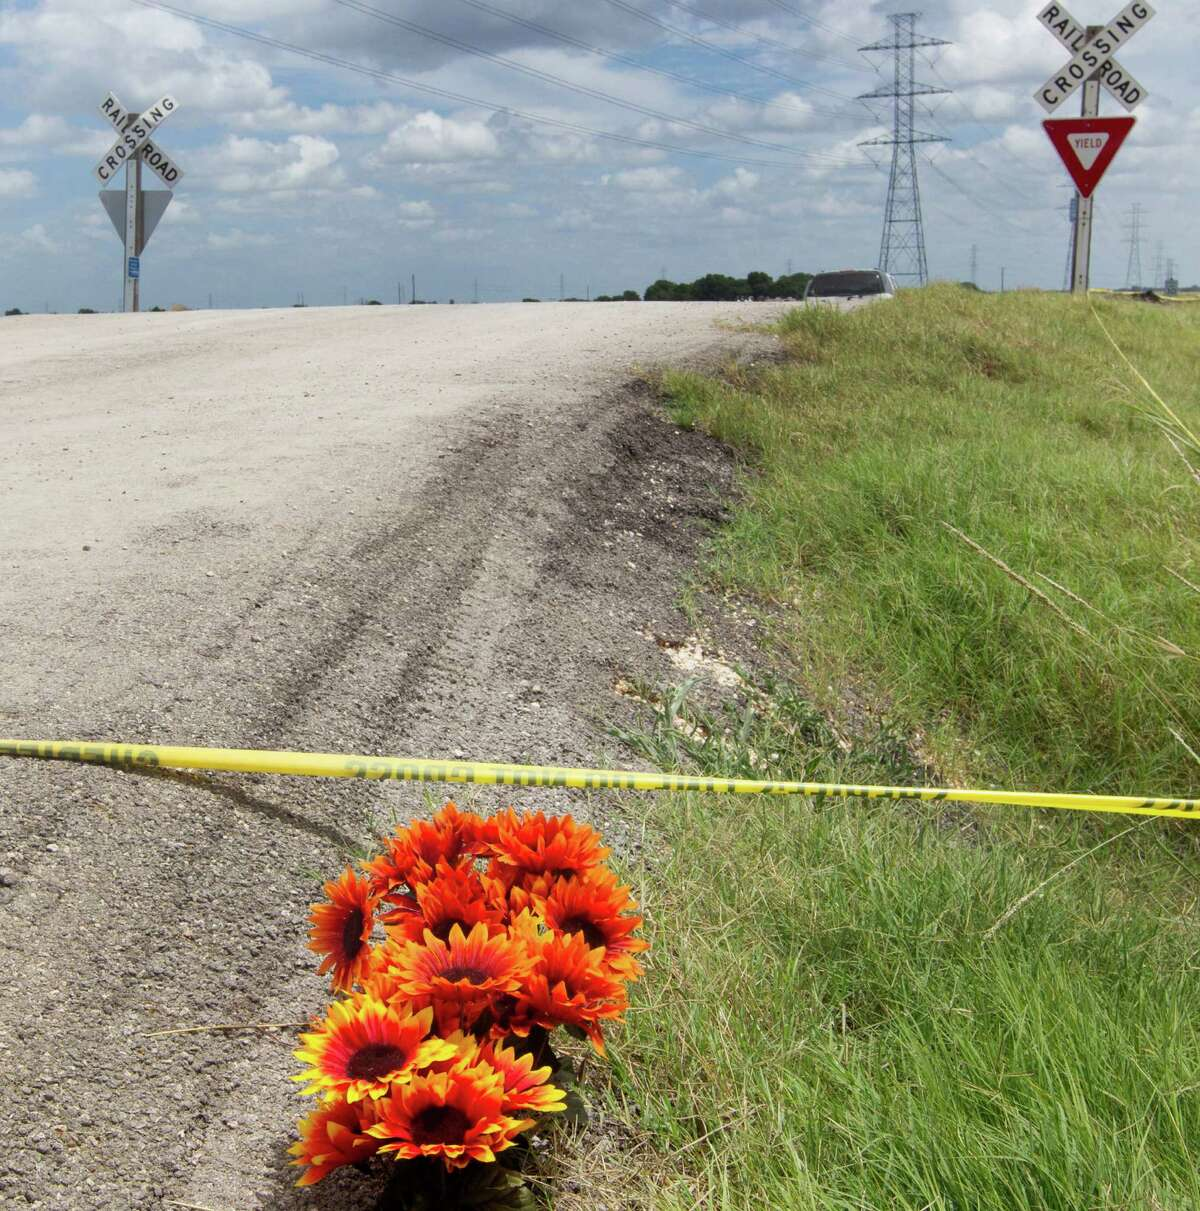 Here are 10 things to know about the crash of a hot air balloon in Central Texas on Saturday morning: